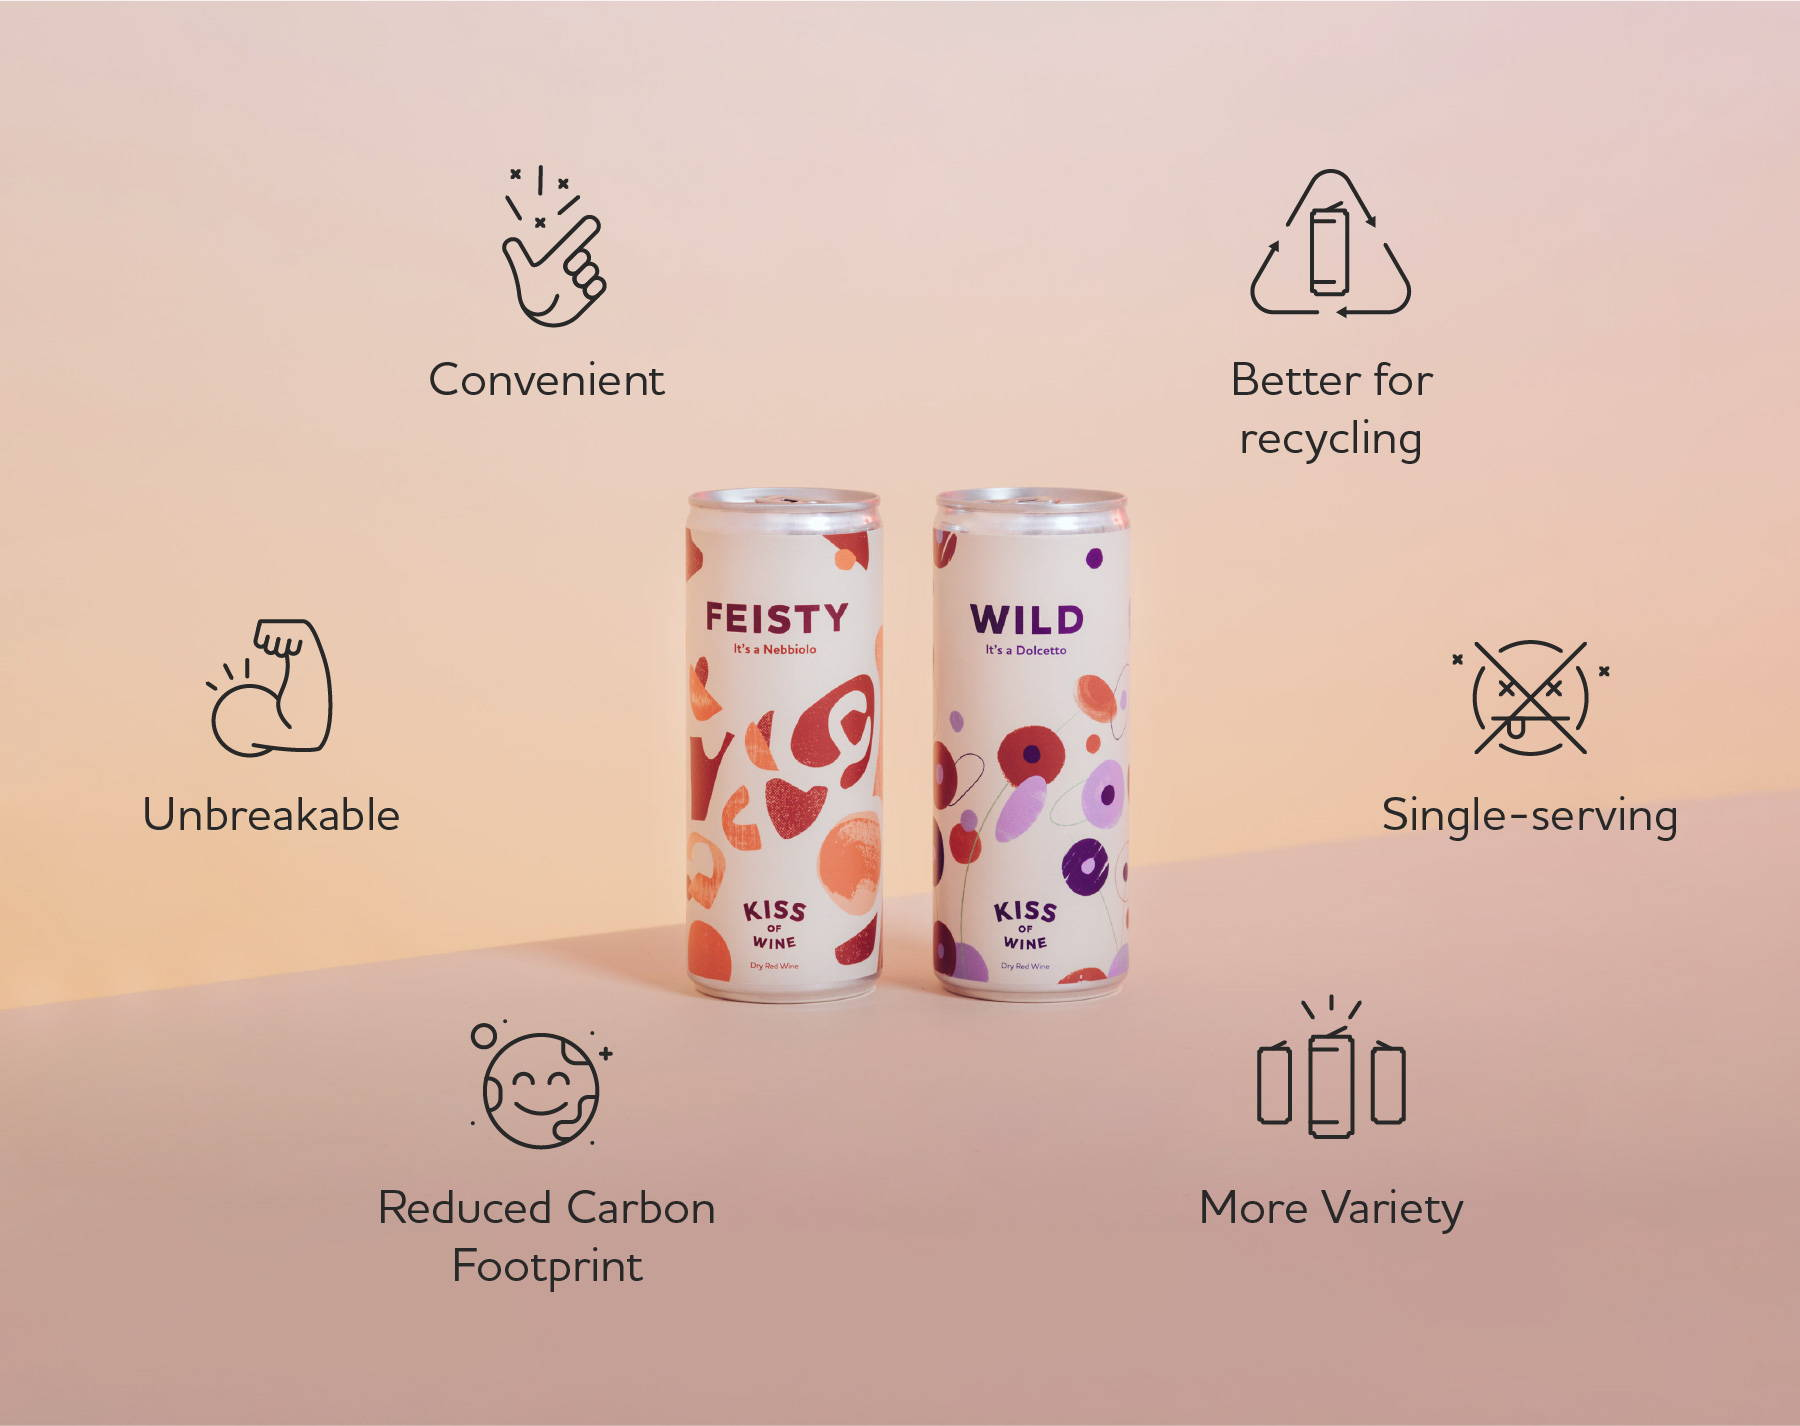 Feisty and Wild wine cans centred around the benefits of canning wine - convenient, better for recycling, single-serving, more variety, reduced carbon footprint and unbreakable.